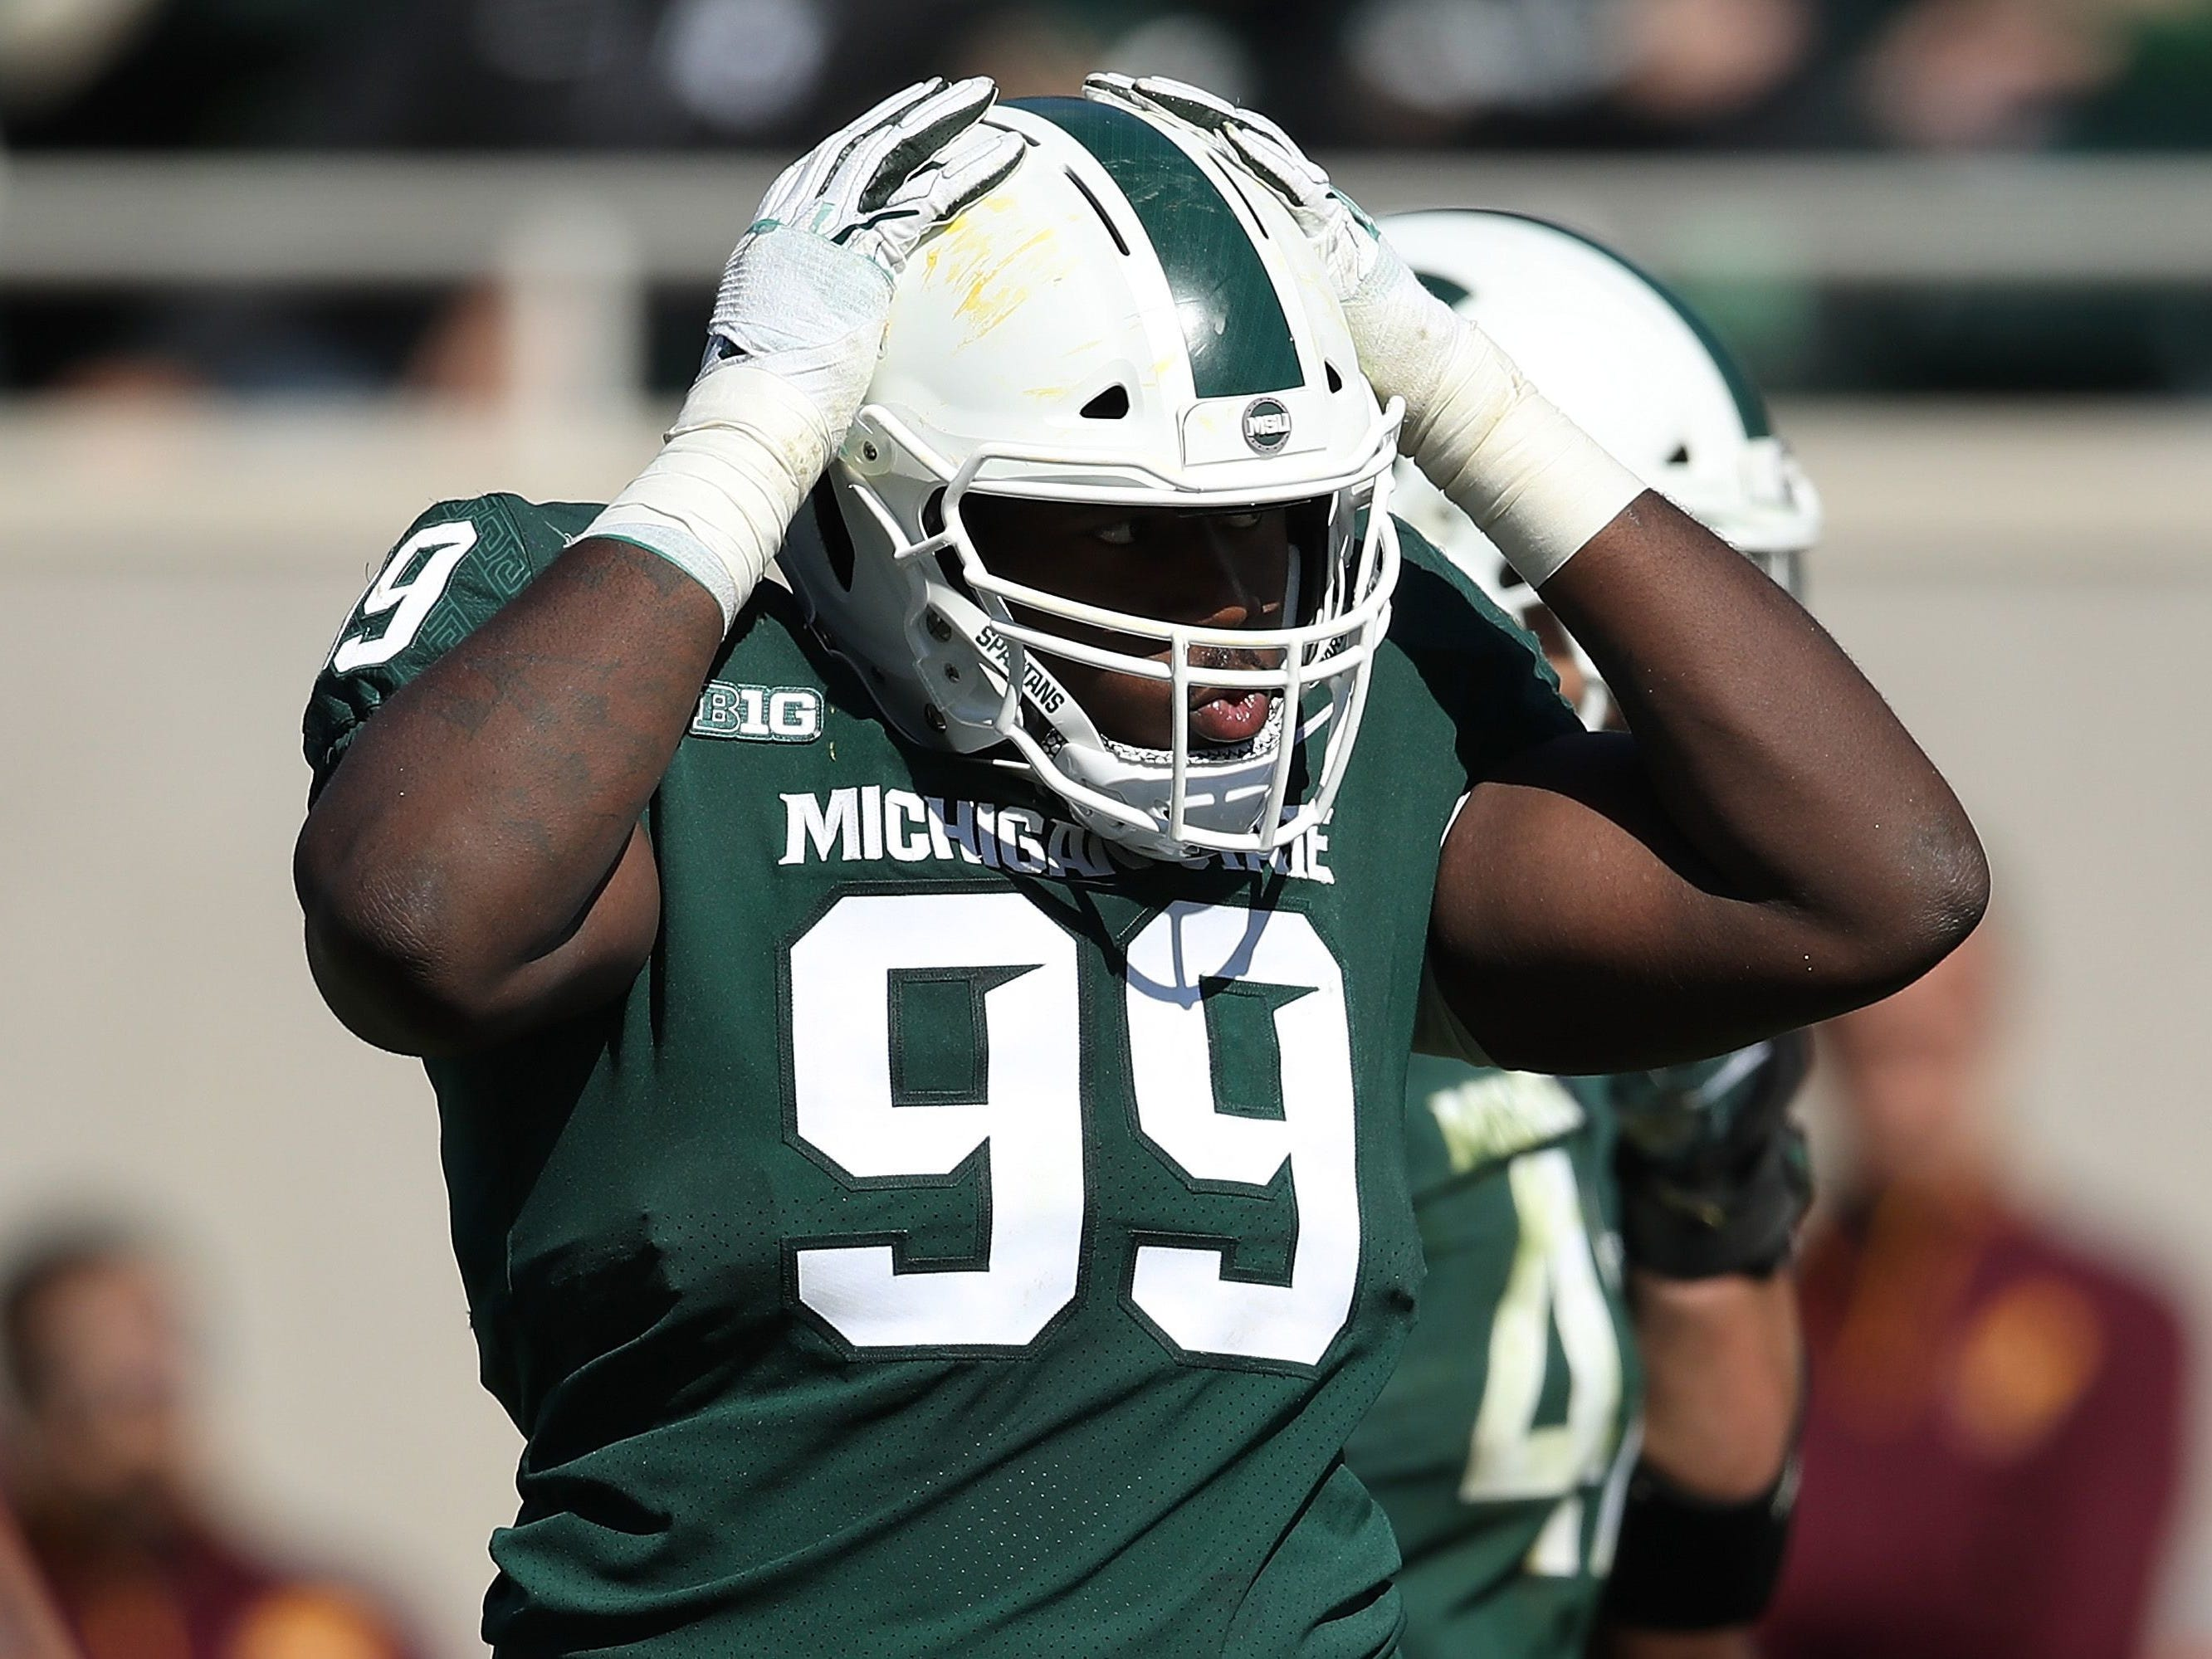 NOSE TACKLE: Raequan Williams – He turned down the NFL to return for his senior season after being named All-Big Ten first team by the Associated Press in 2018. Williams recorded a career-best 53 tackles, including a career-high 10.5 tackles for loss and two two sacks while breaking up five passes.